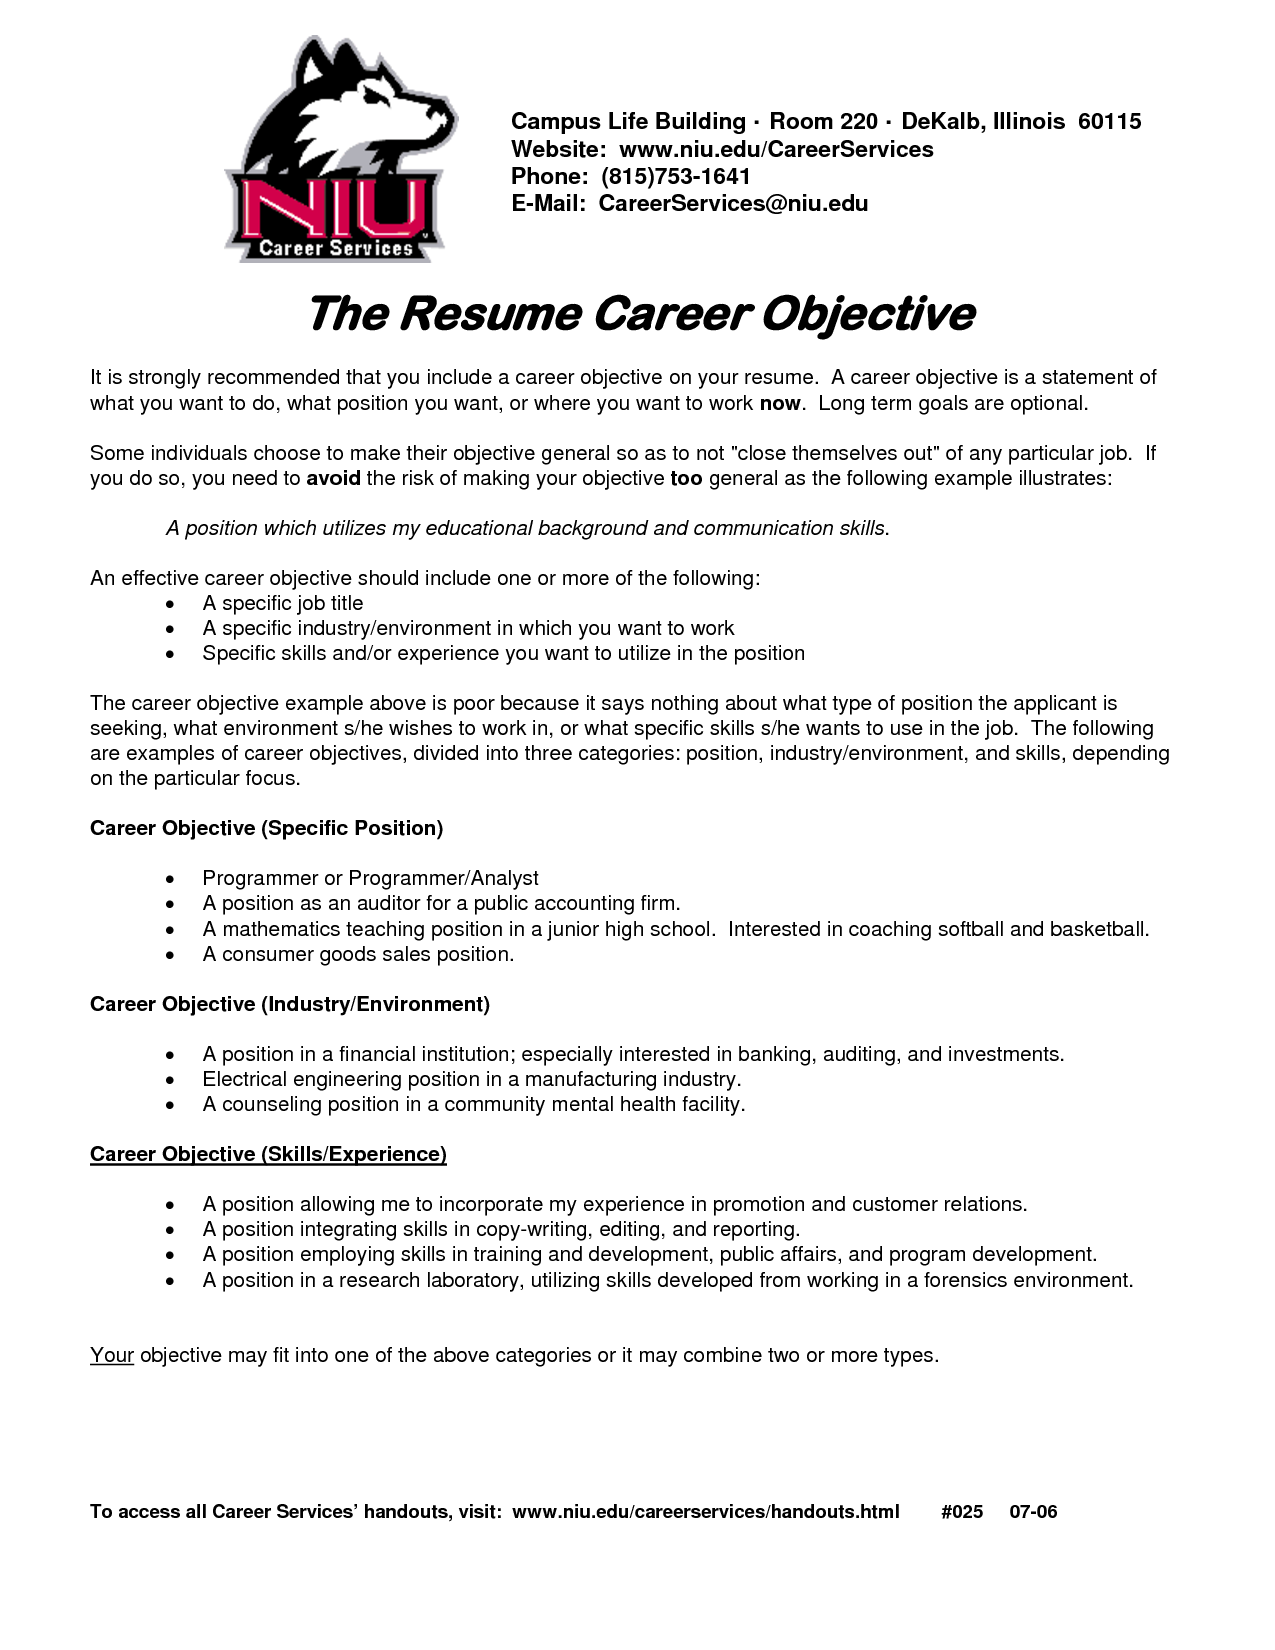 Objectives In Resumes Httpswwwgooglesearchqobjective Resume  Resume